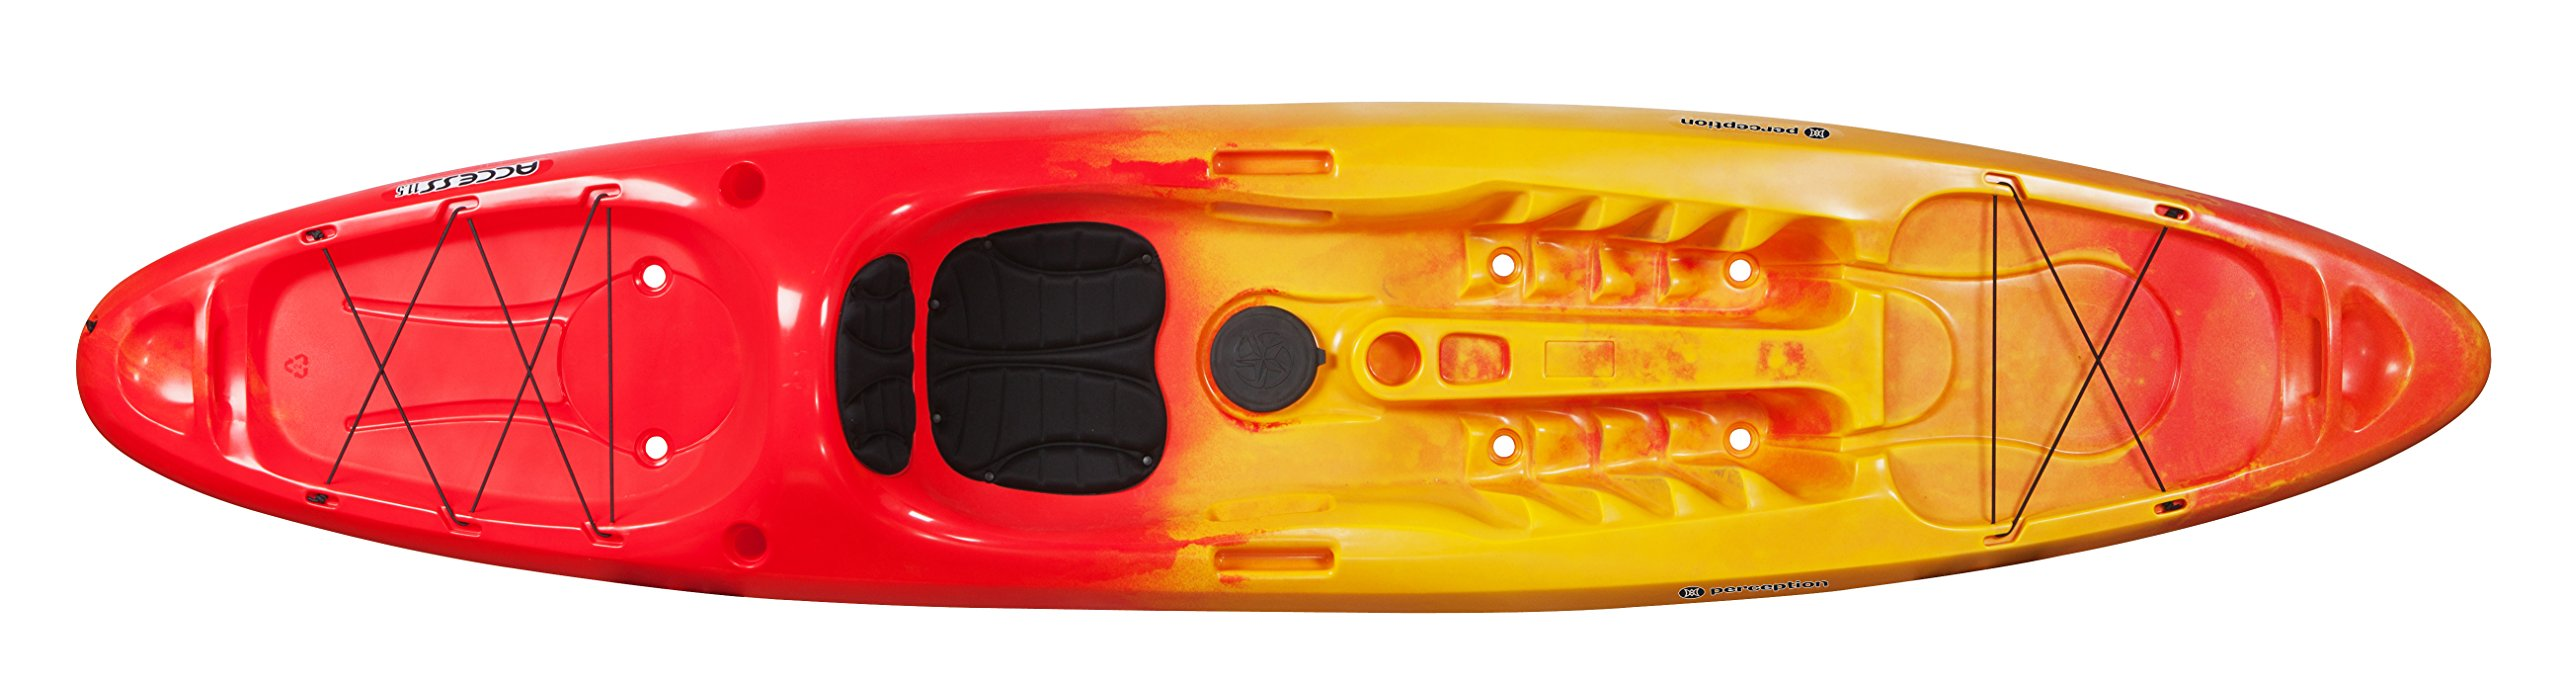 Perception Kayak Access Sit On Top for Recreation by Perception Kayaks